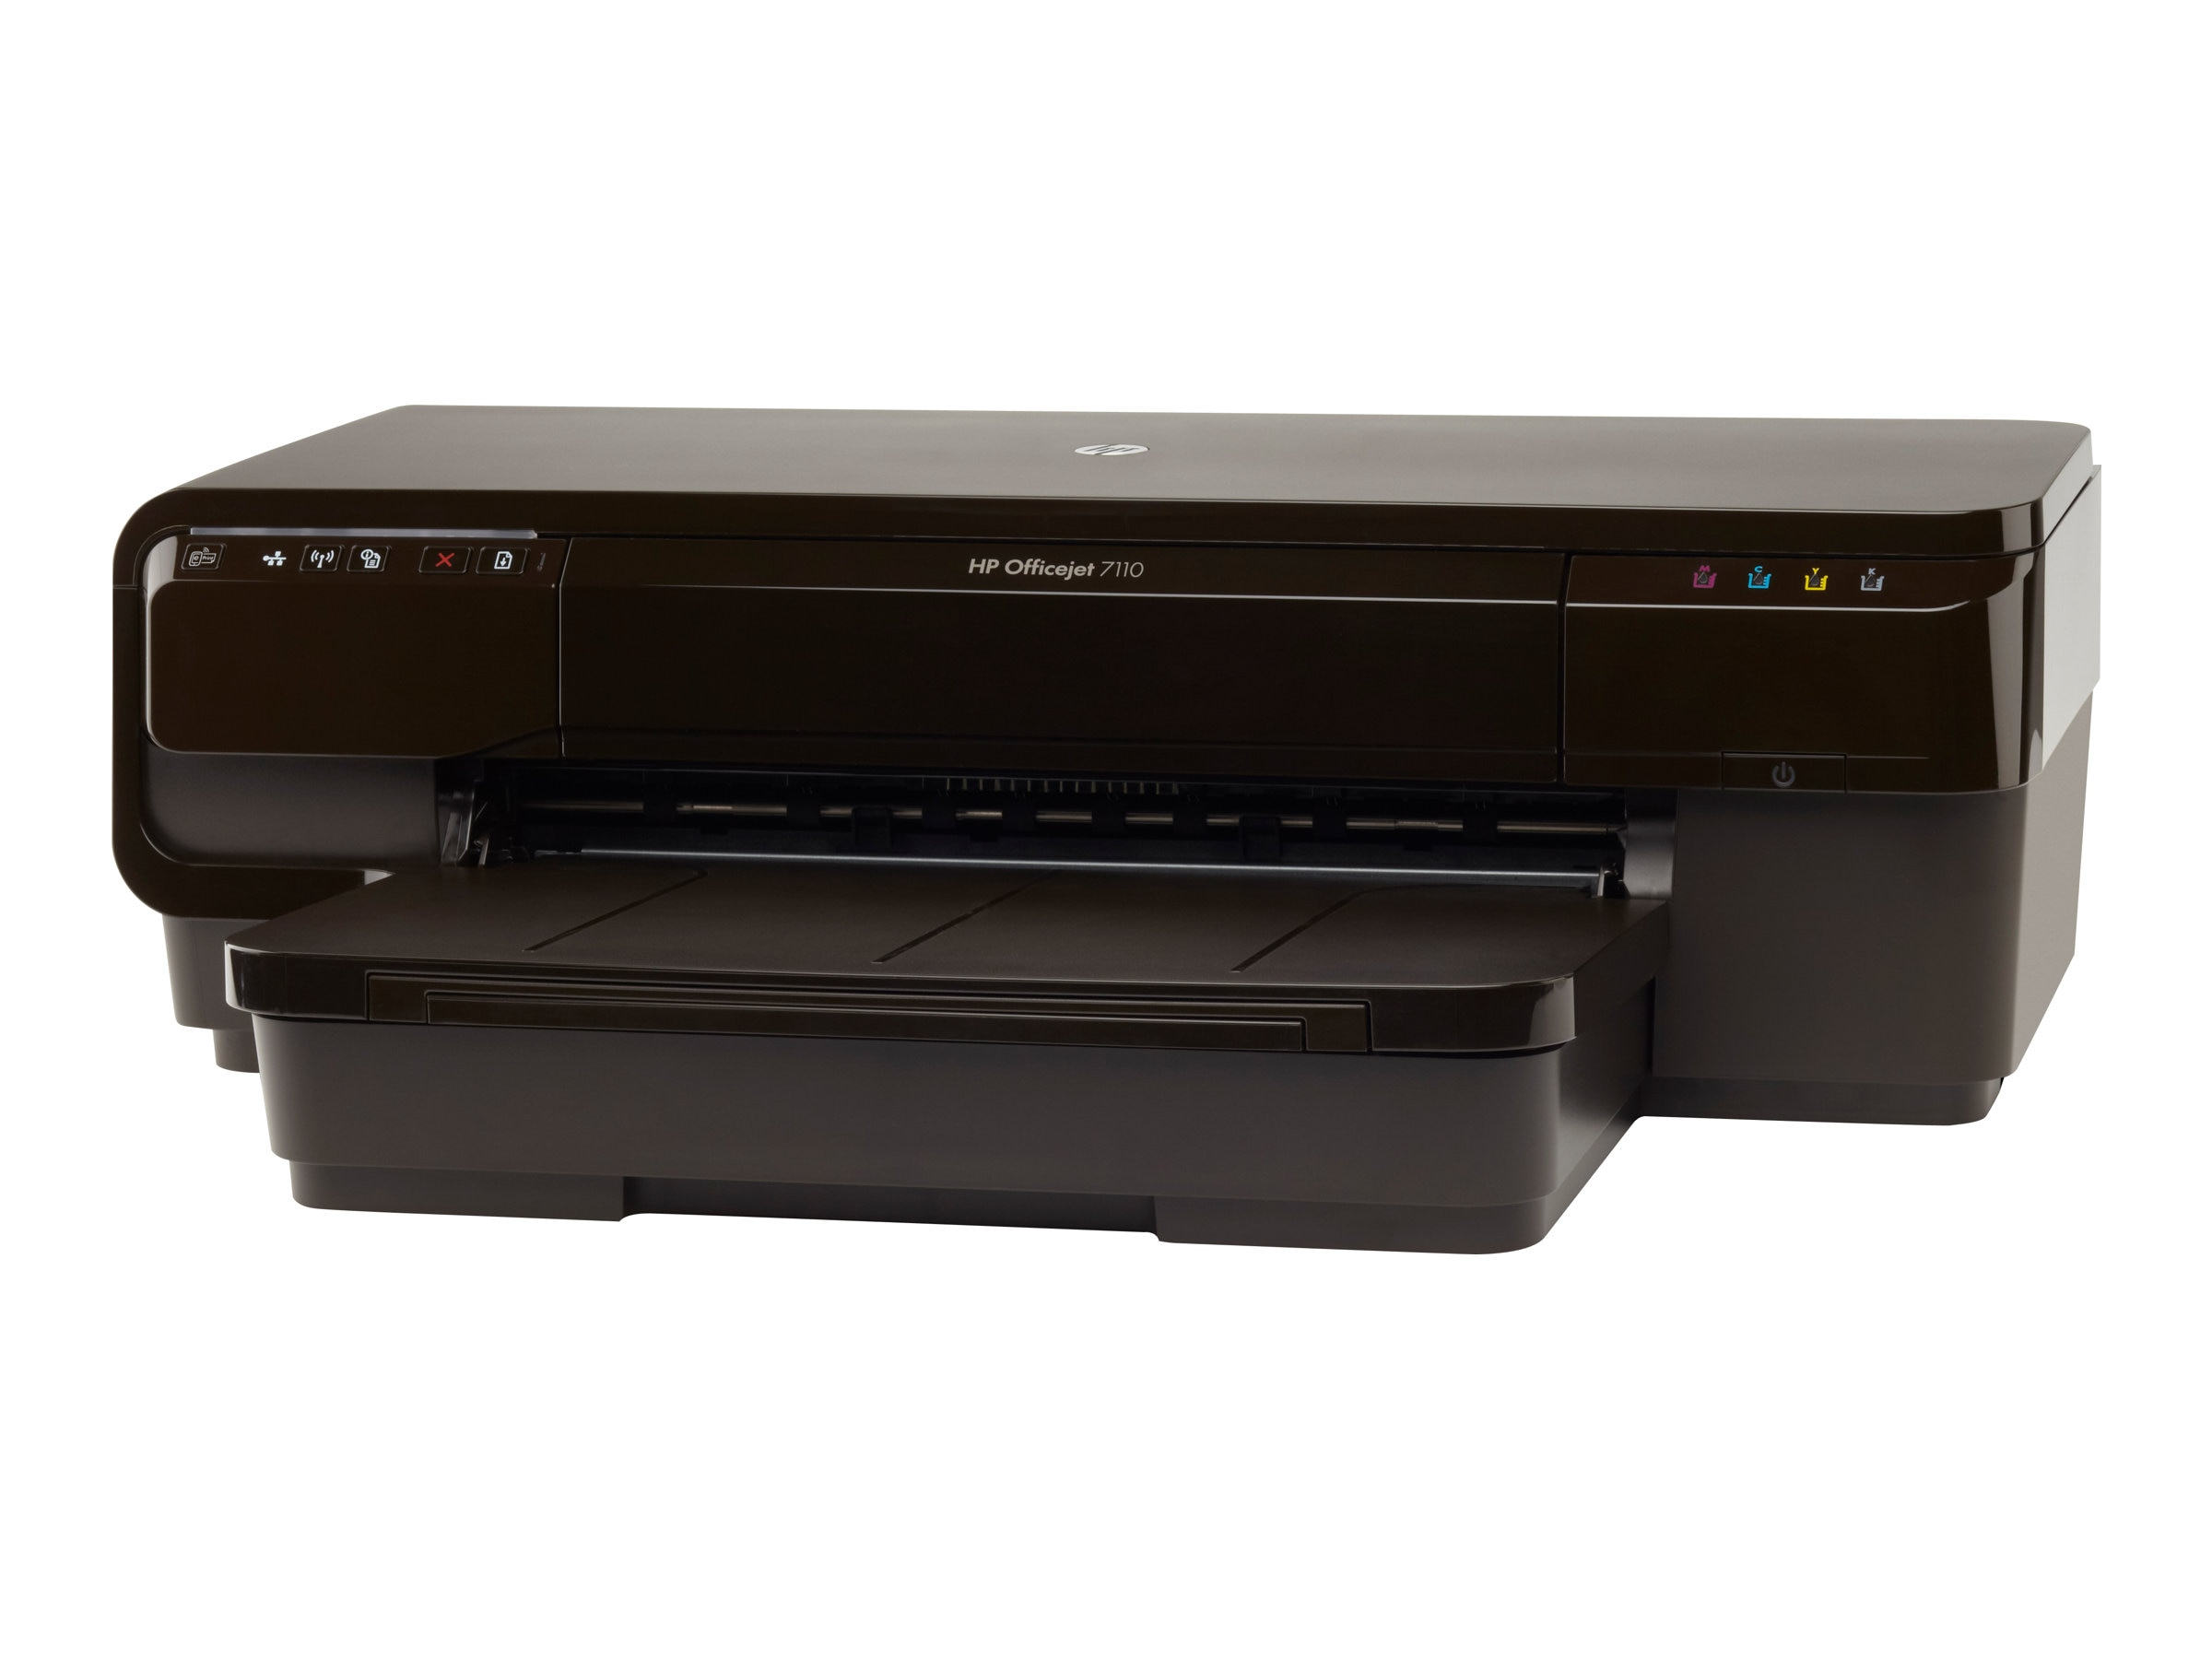 HP Officejet 7110 Wide Format ePrinter - H812a, CR768A#B1H, 15052006, Printers - Ink-jet